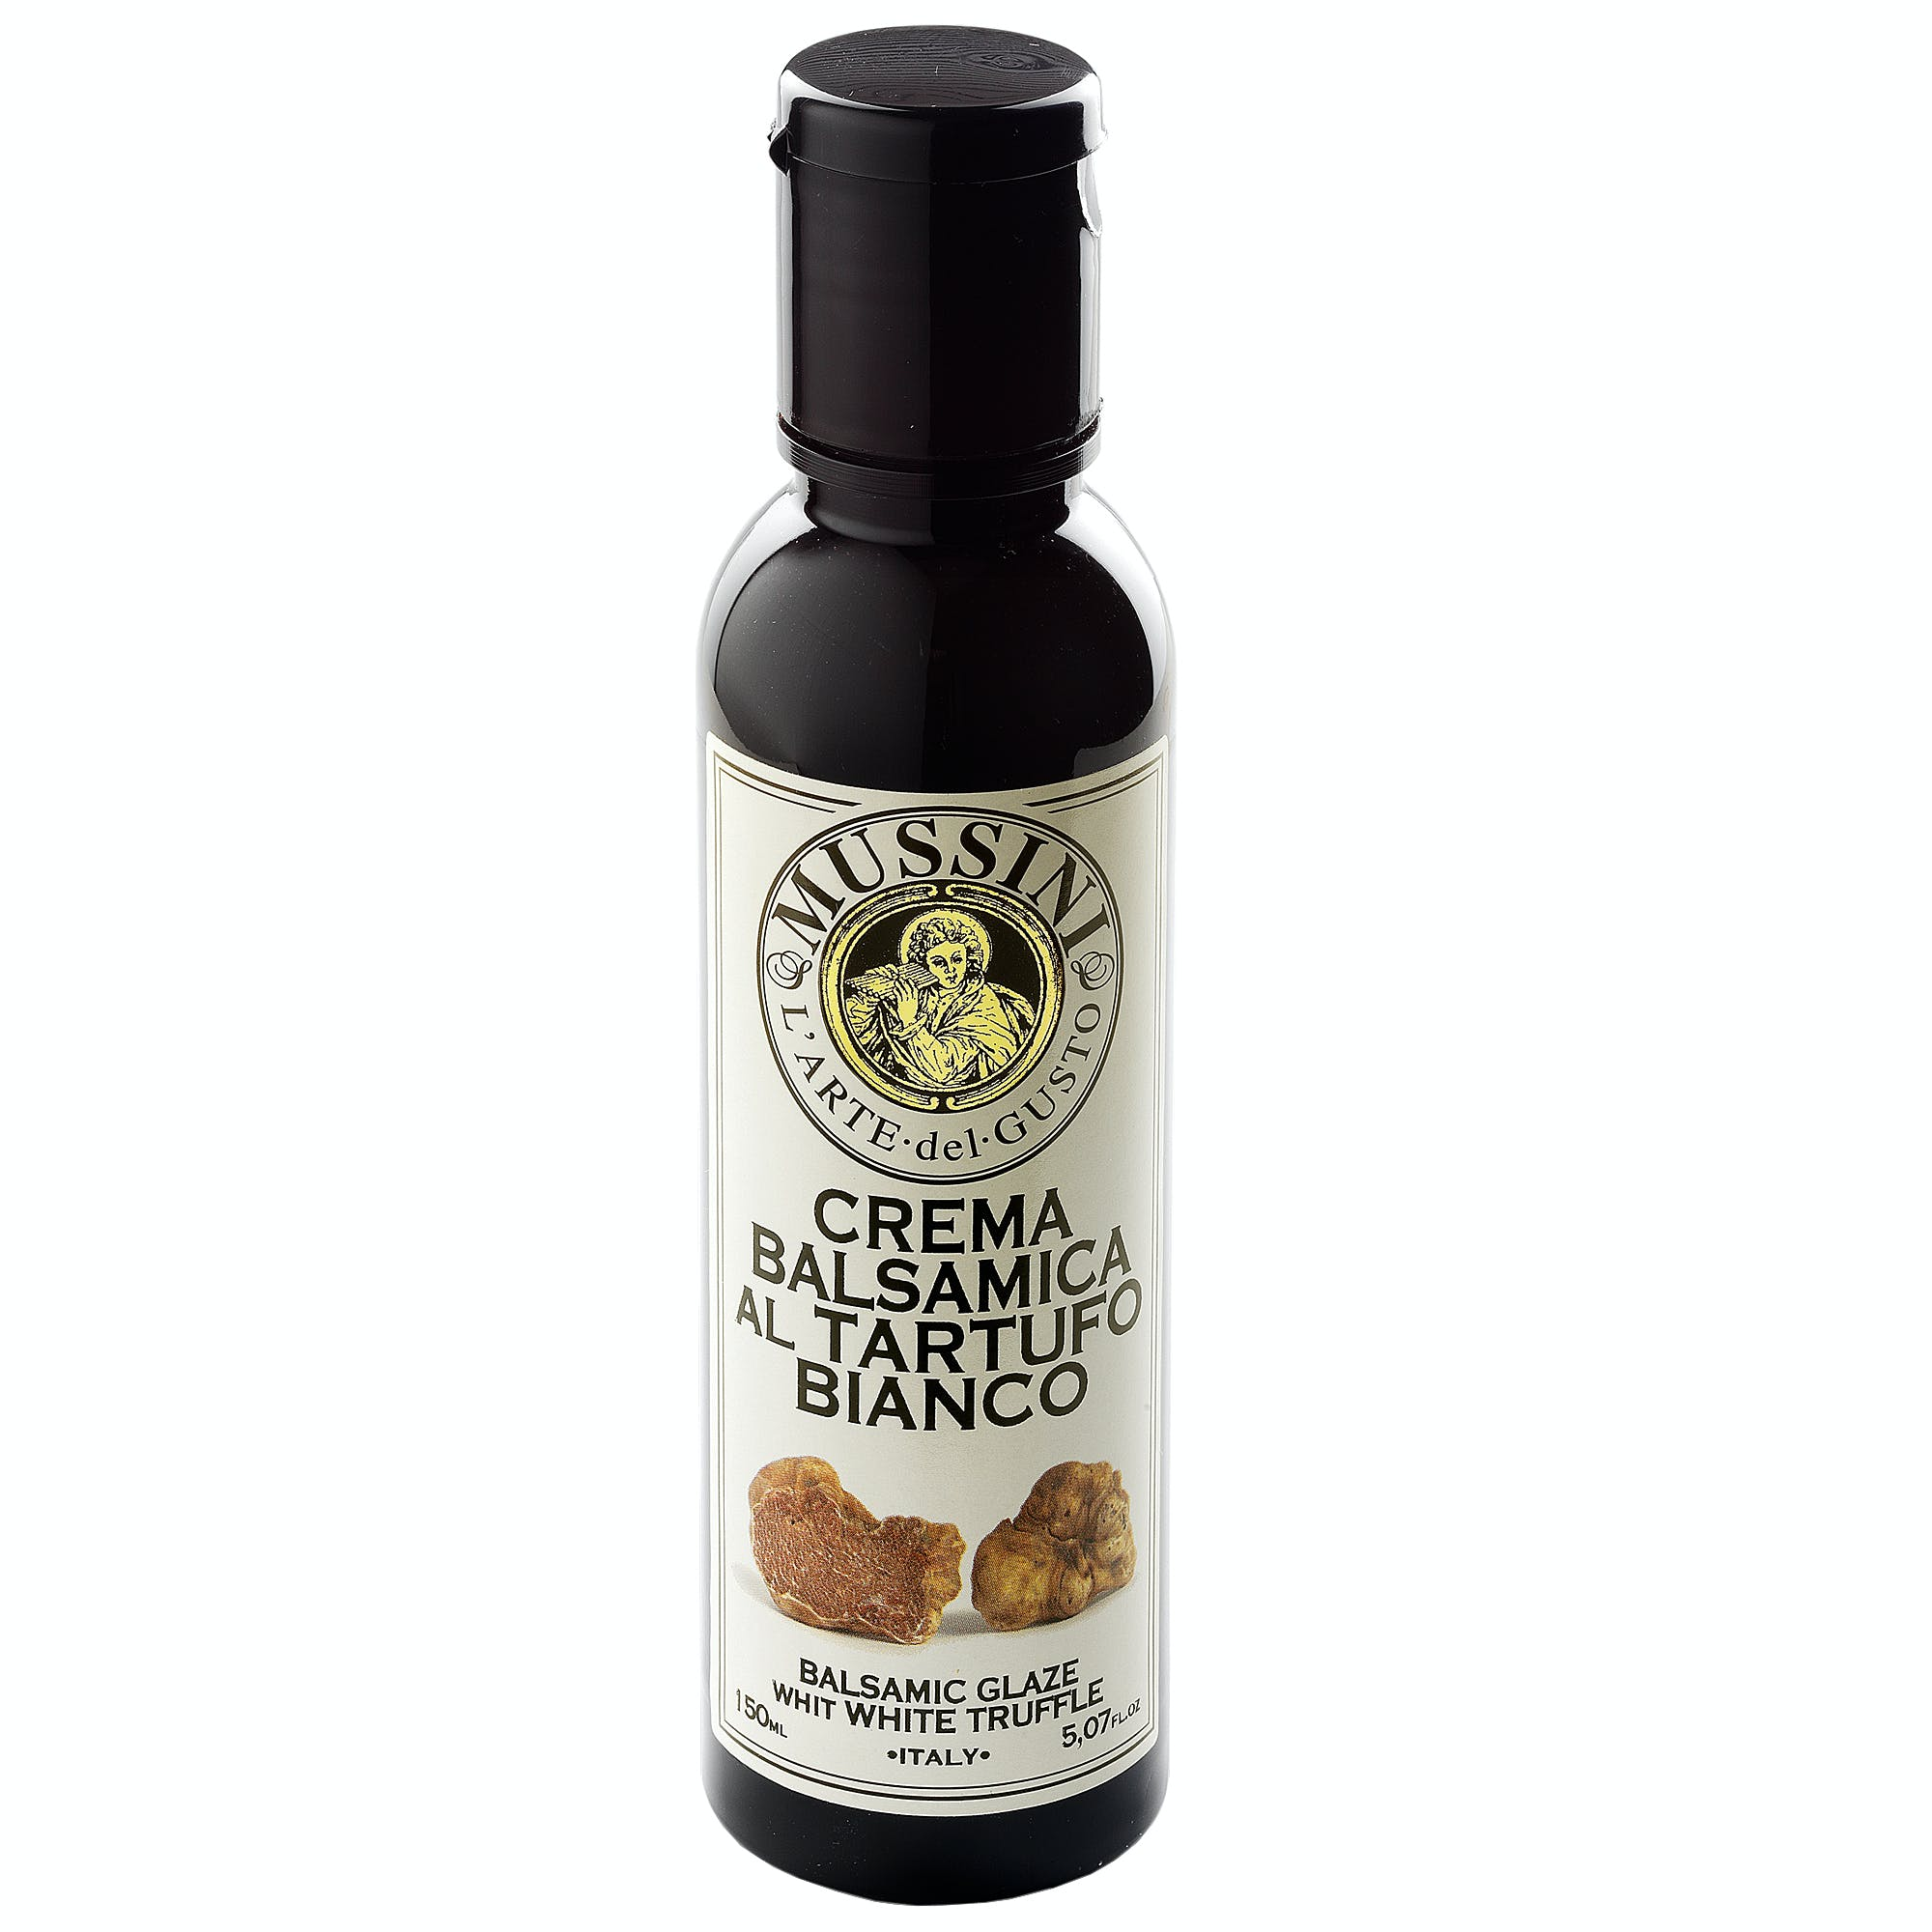 Italian Truffle Balsamic Glazes From Mussini, 5.1 Ounces Balsamic Vinegar sold by M5 Corporation